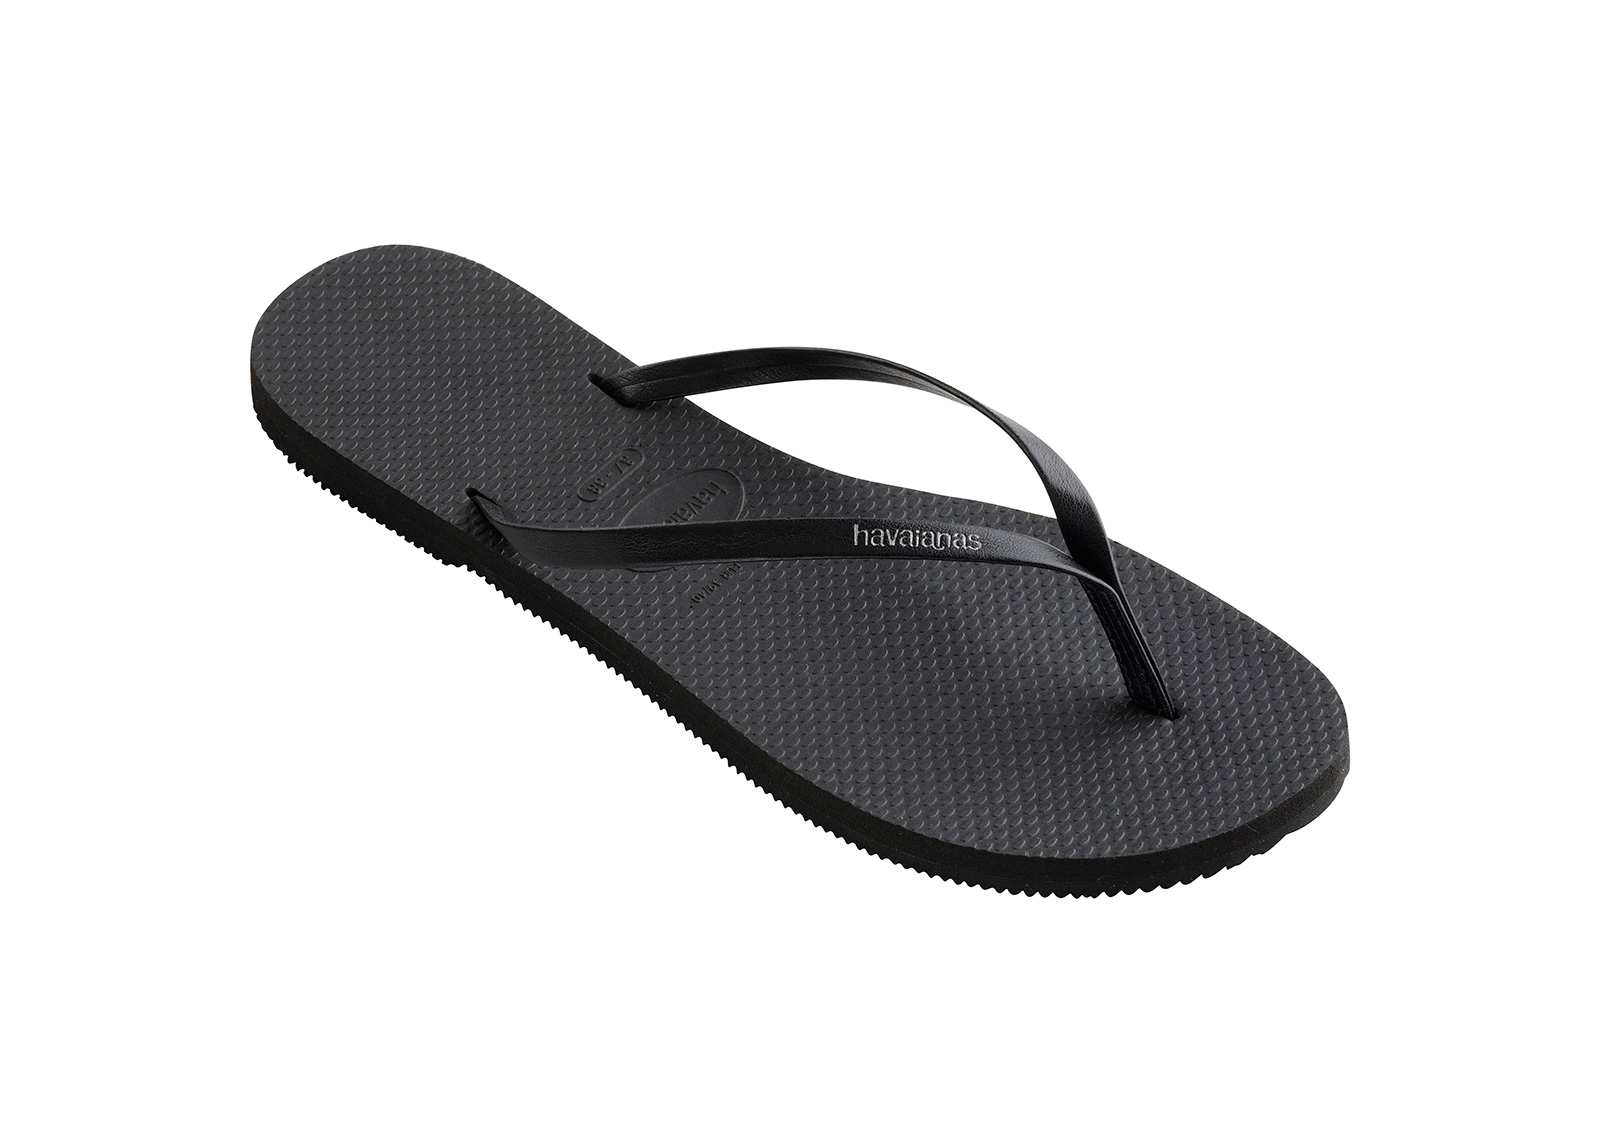 Black Flip Flops - Havaianas You Black